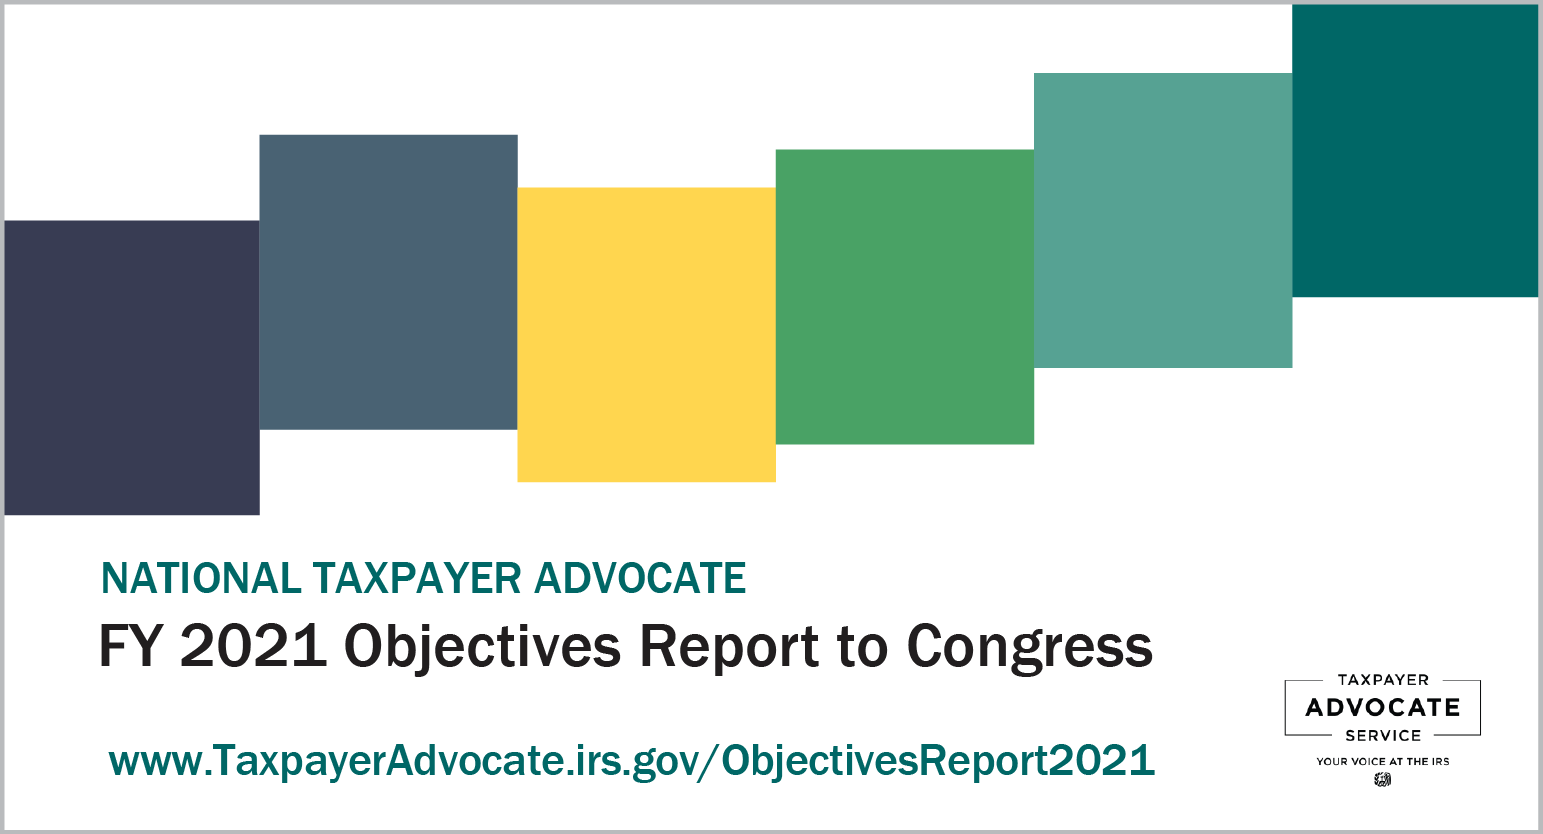 Taxpayer Advocate Service FY 2021 Objectives Report To Congress